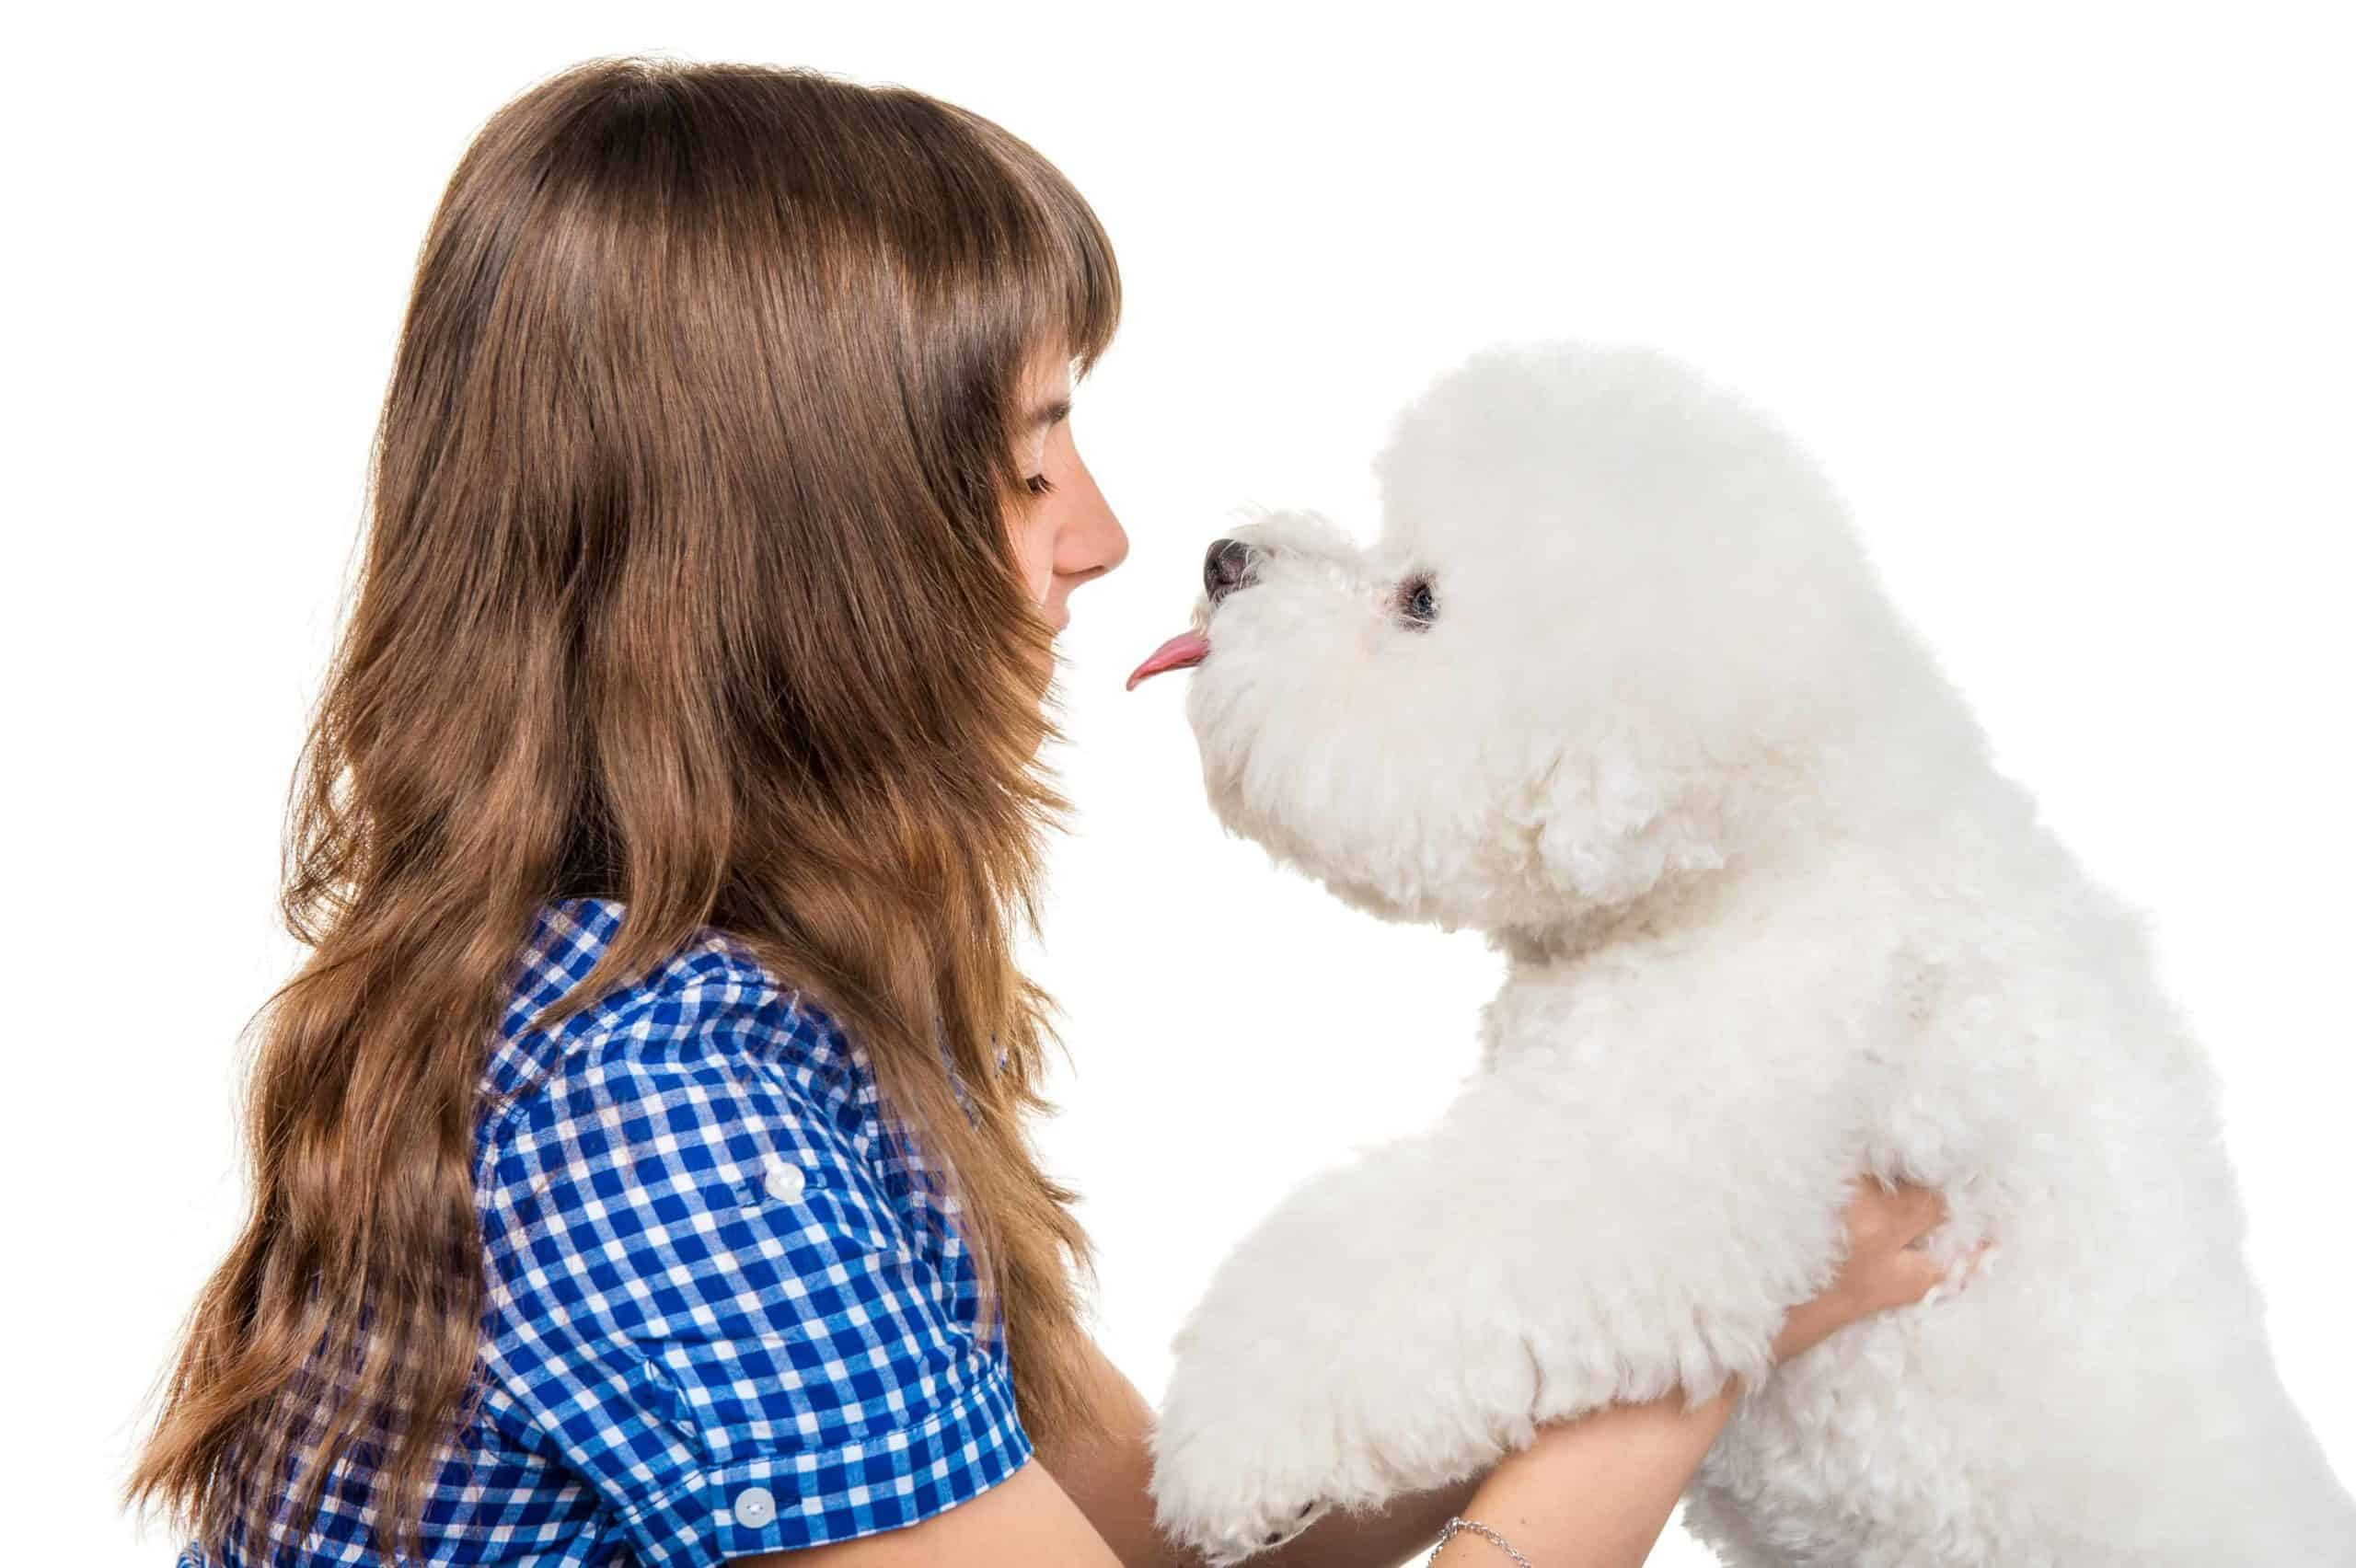 Young girl holds bichon frise. To choose the right dog breeds for children, consider the family's lifestyle, the dog's size, temperament, and energy level.